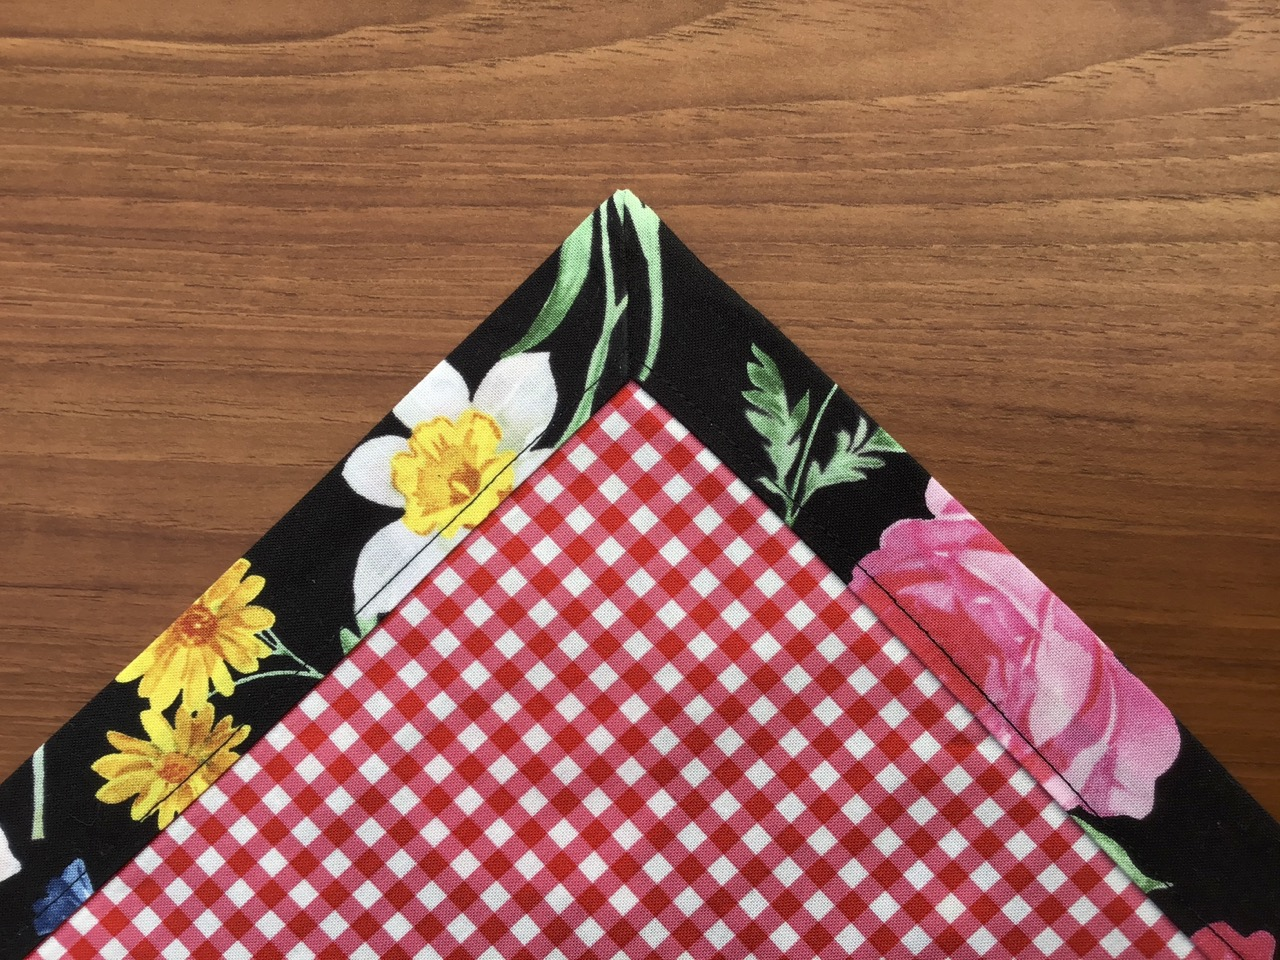 No-Hassle Table Topper Sewing Tutorial Video by the Stitch it! Sisters